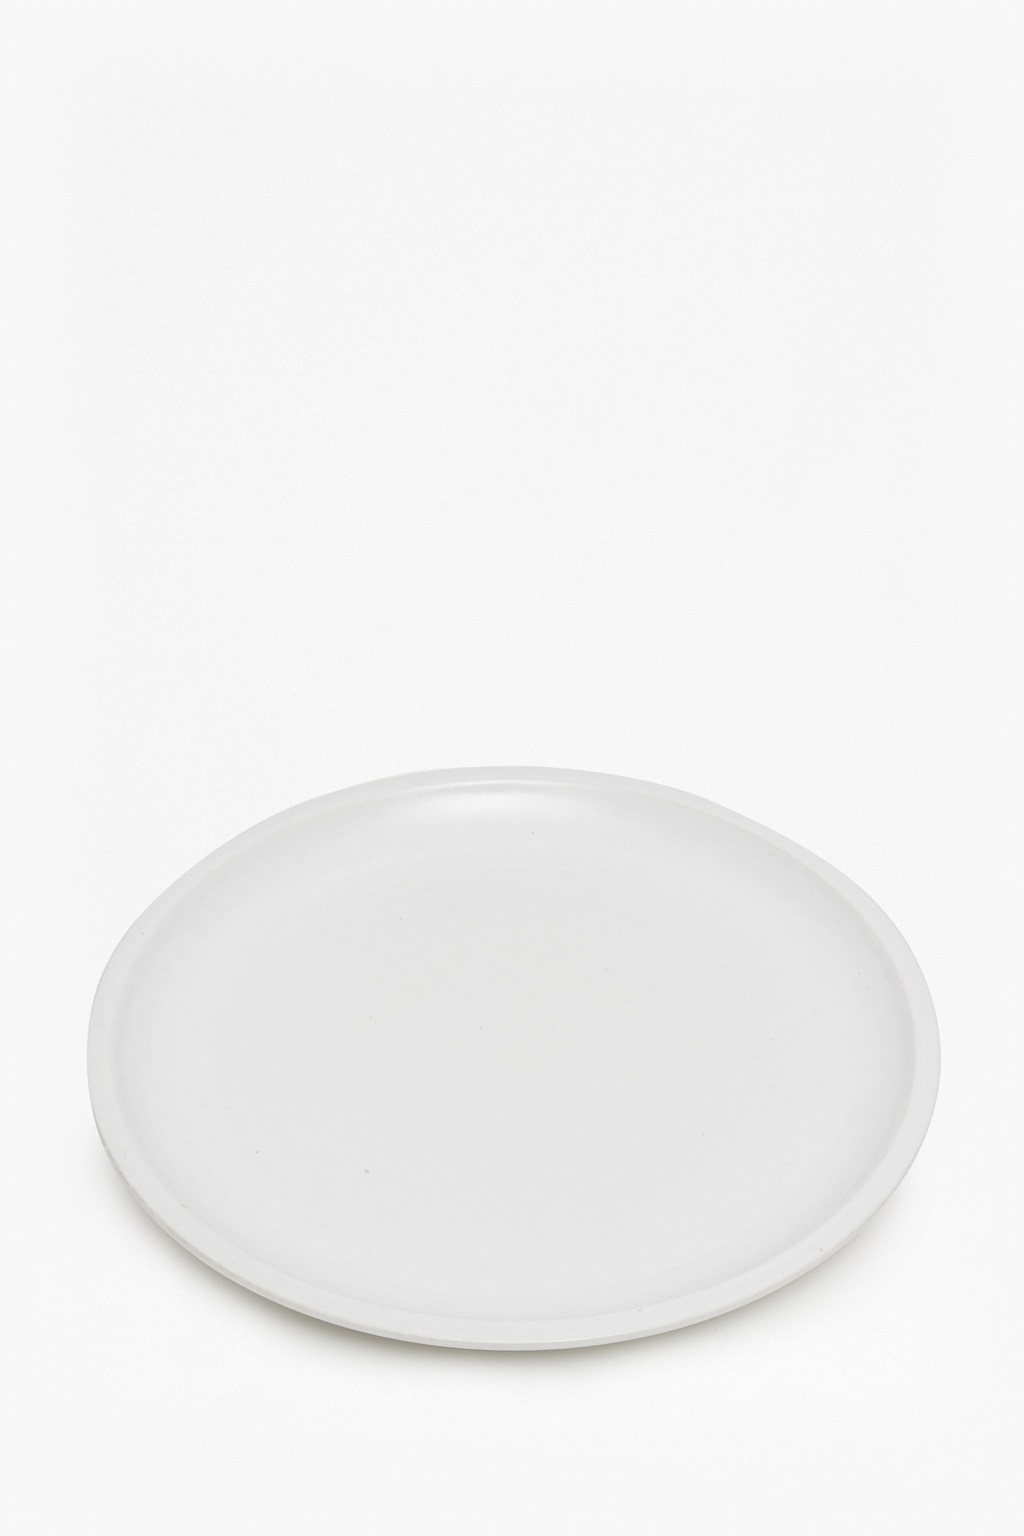 Artisan White Dinner Plate. loading images.  sc 1 st  French Connection & Artisan White Dinner Plate | Collection | French Connection